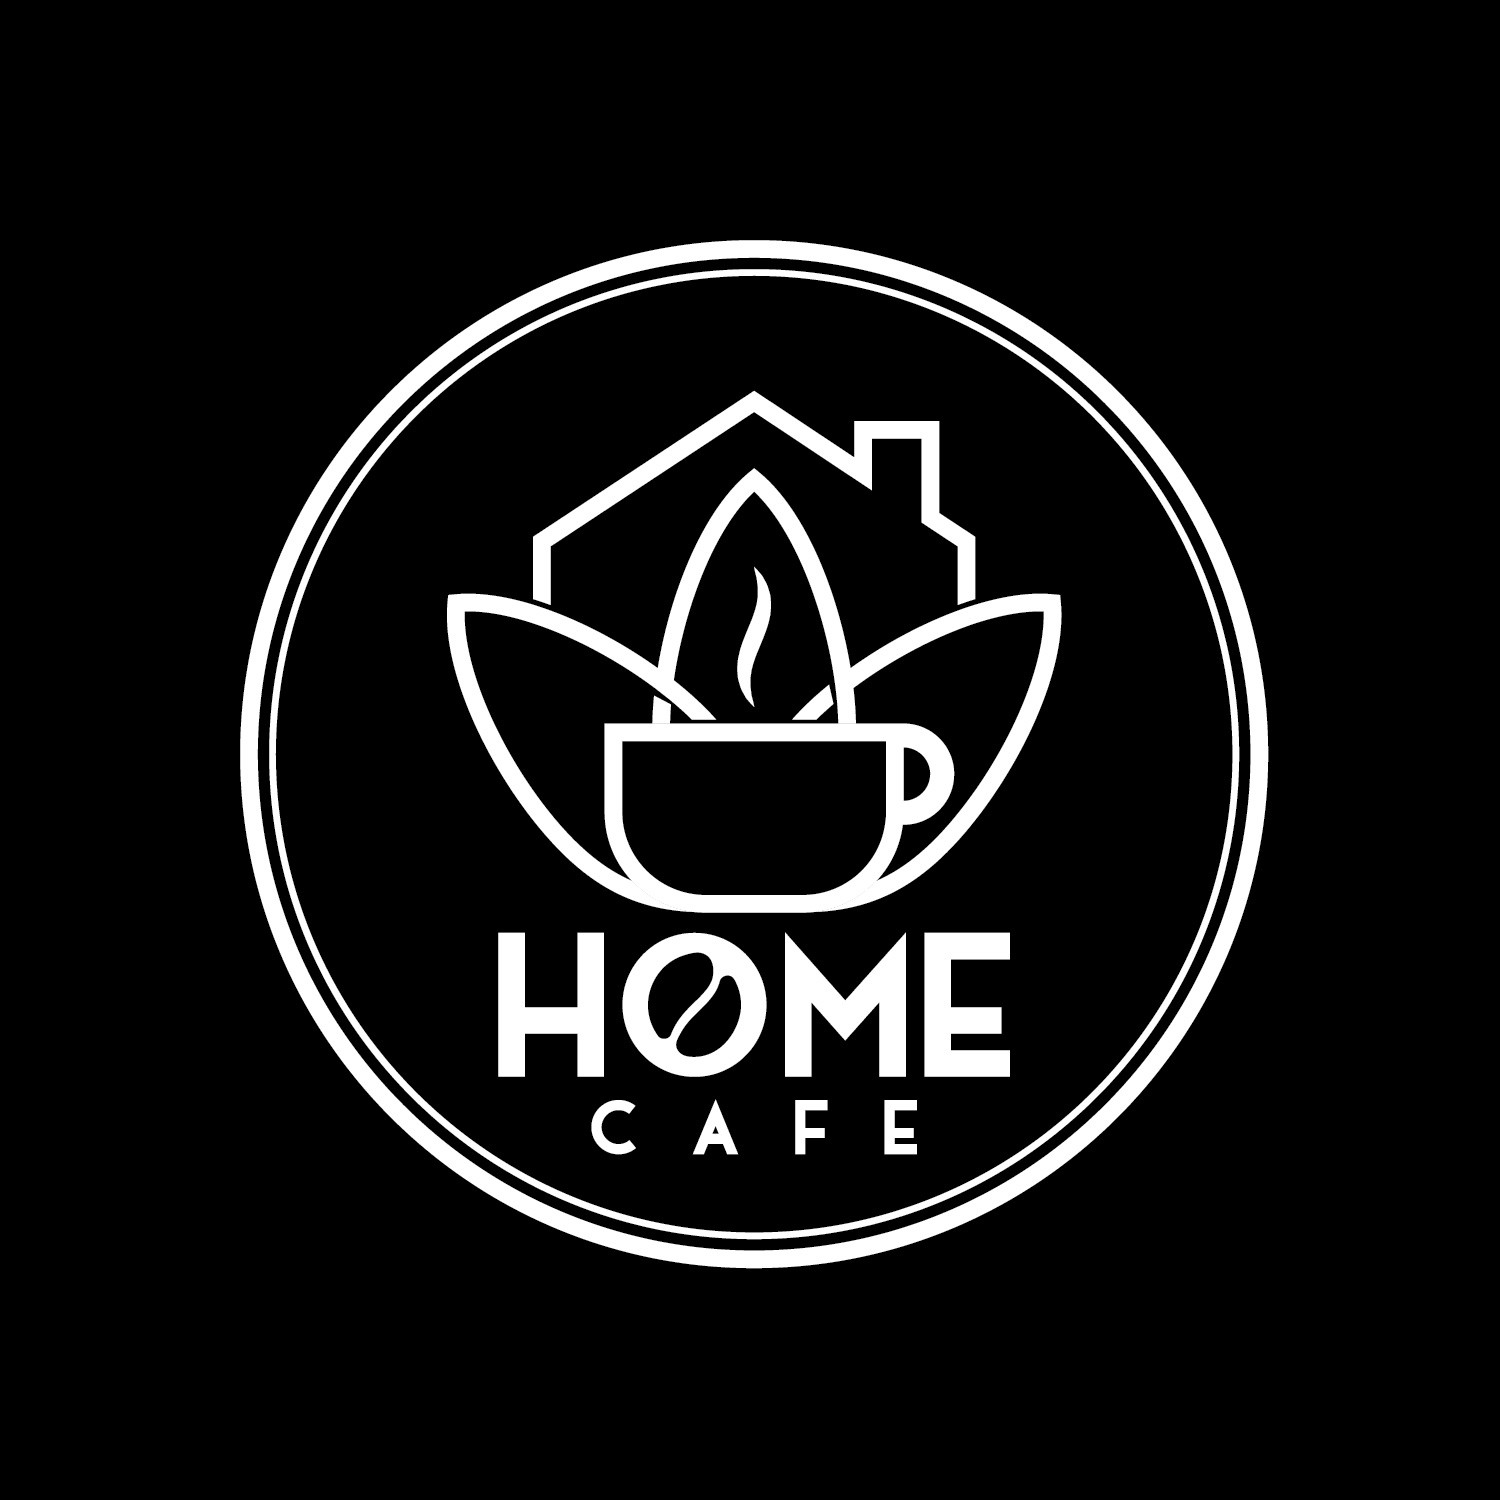 New Logo For Coffeeshop / Cafe